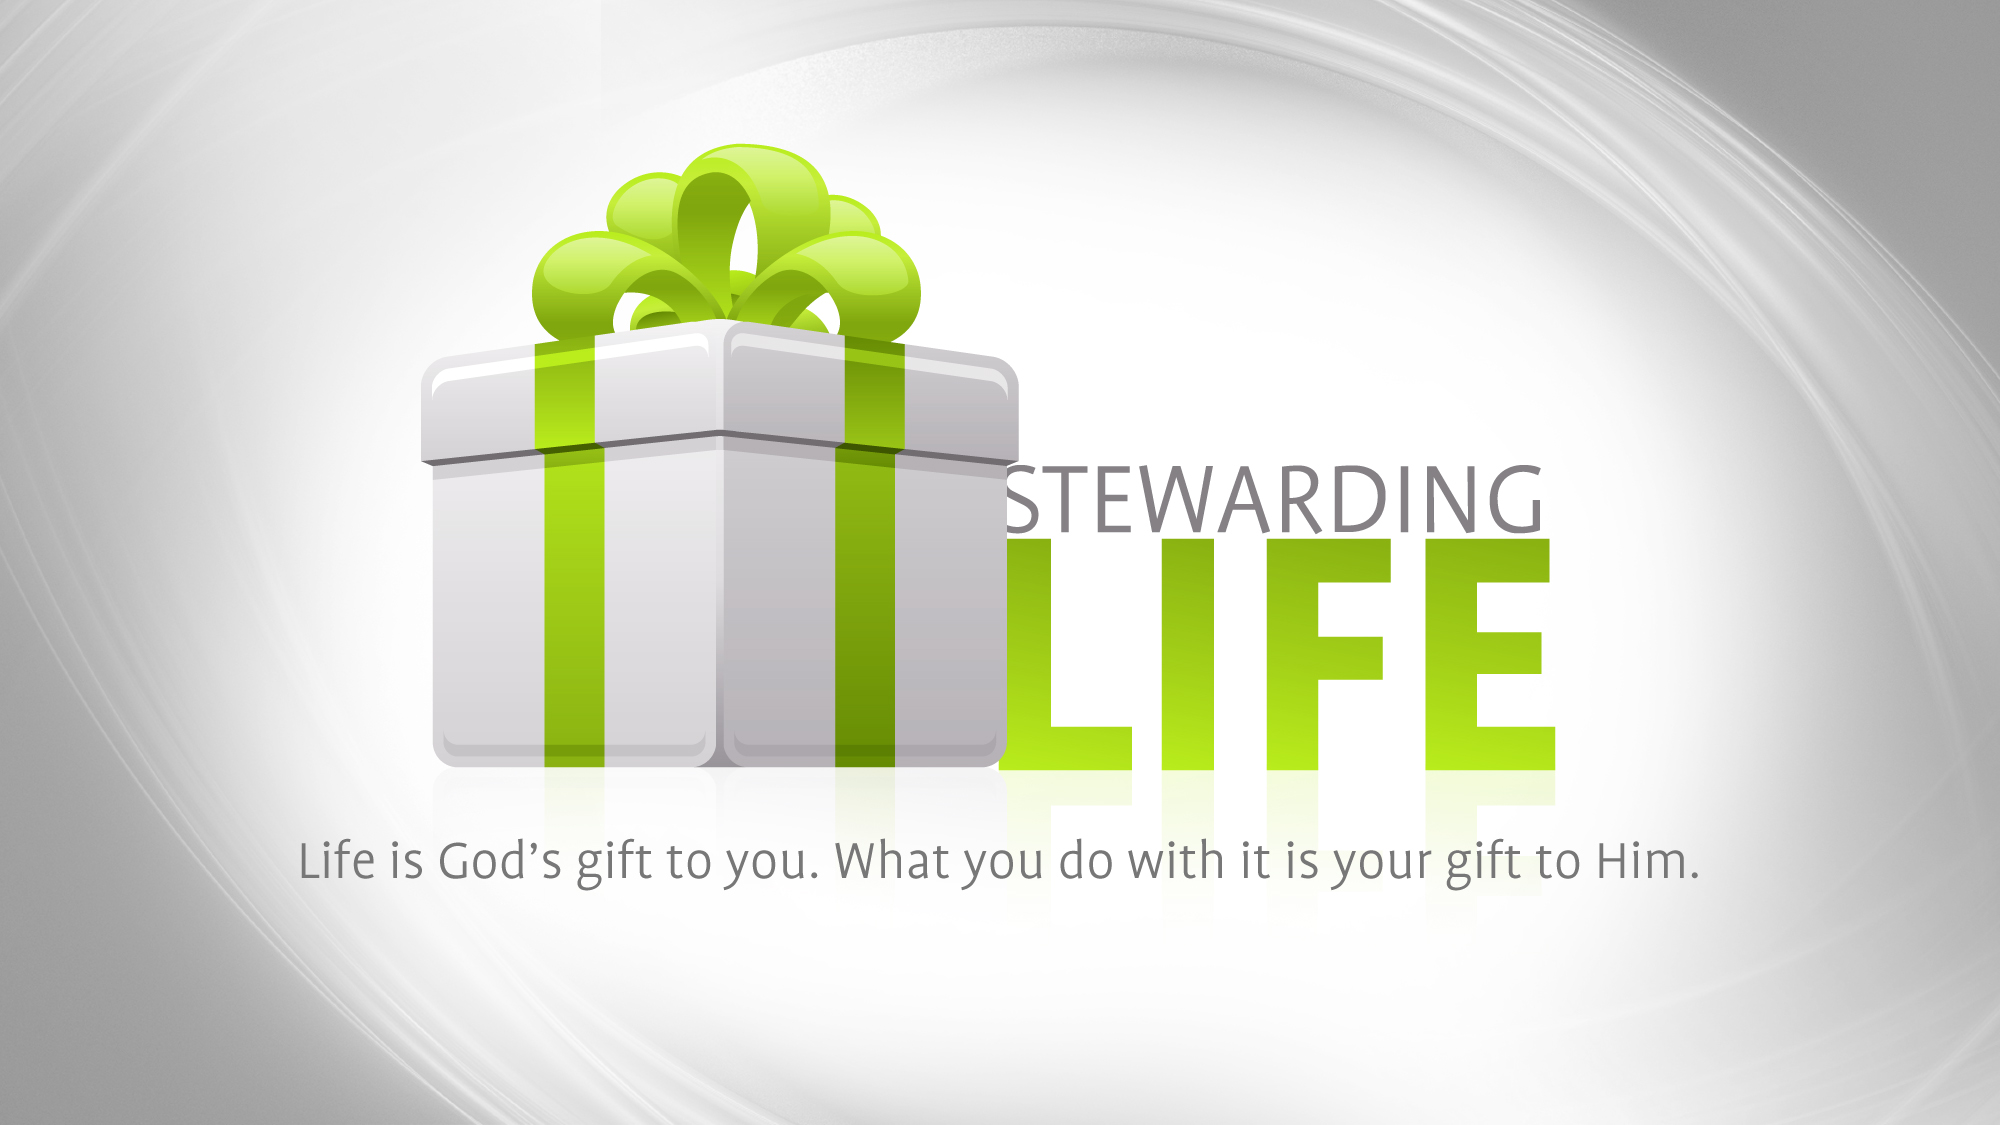 Stewarding Life | Ministry127: ministry127.com/free-resources/powerpoint/stewarding-life